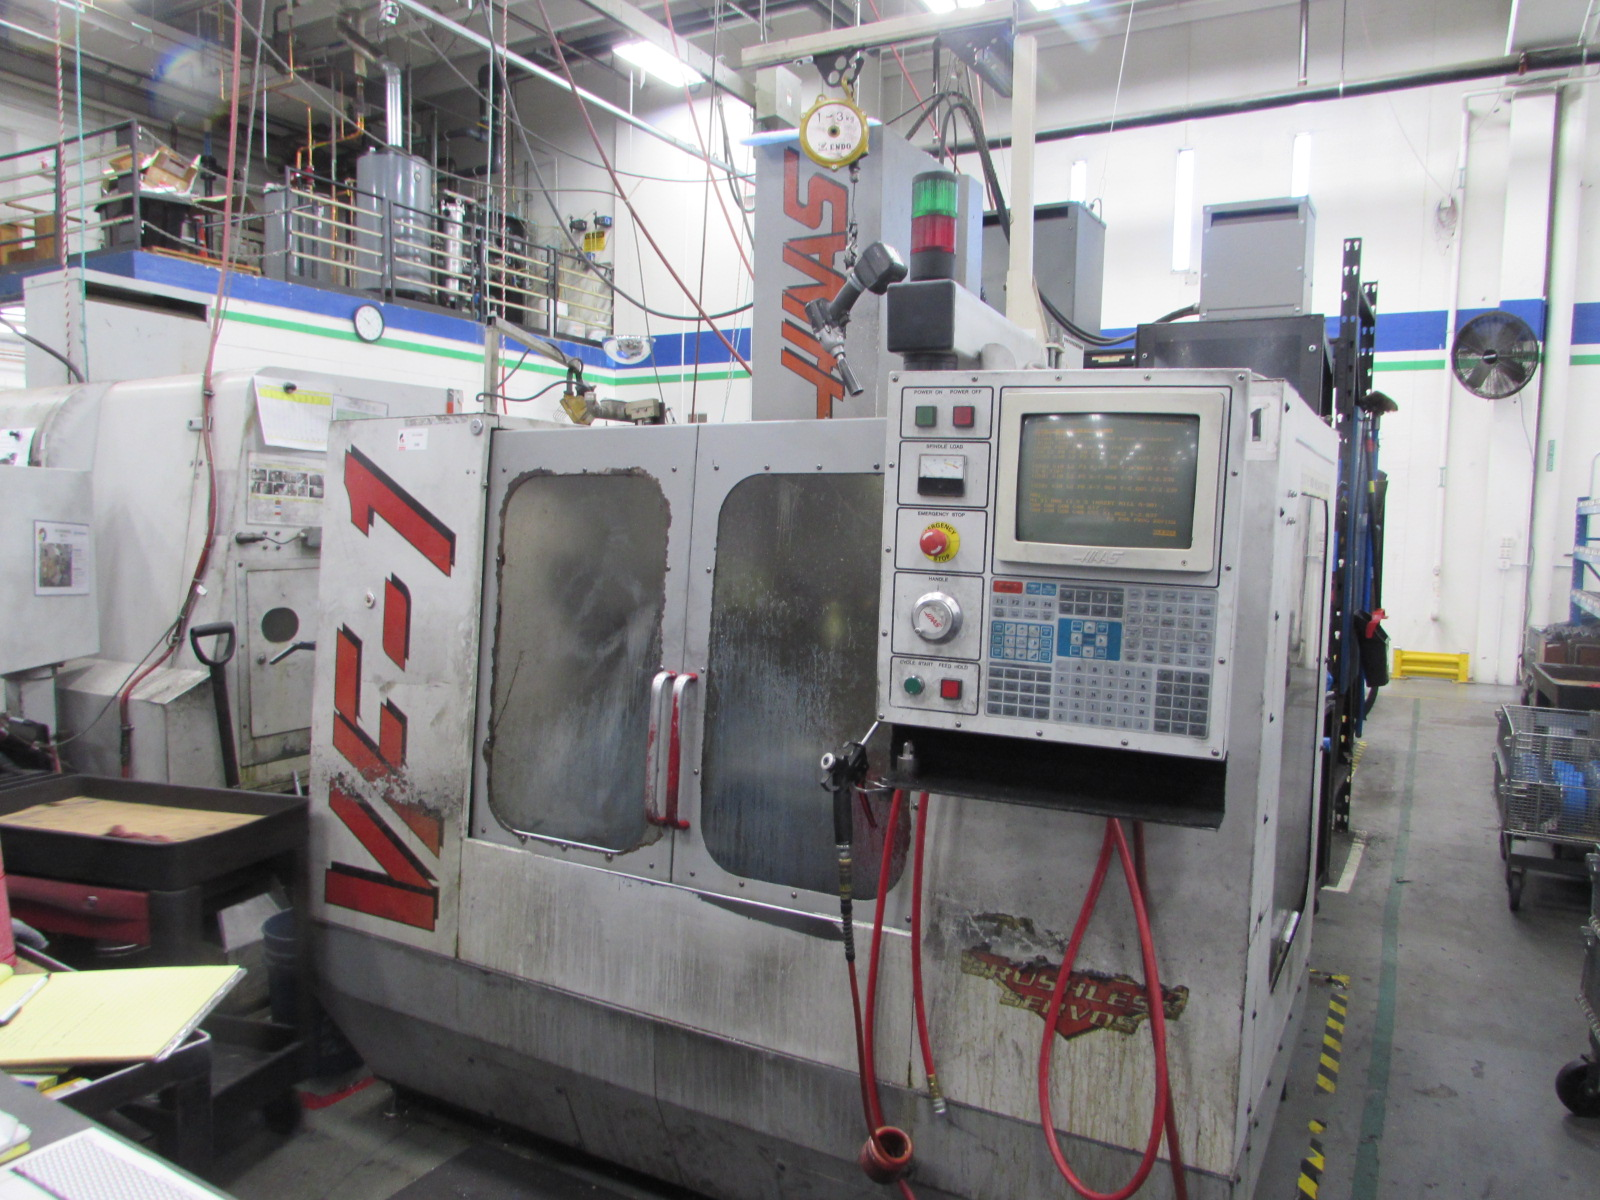 Haas VF-1 CNC Vertical Machining Center with Brushed Type 4th Axis Drive and Chip Auger